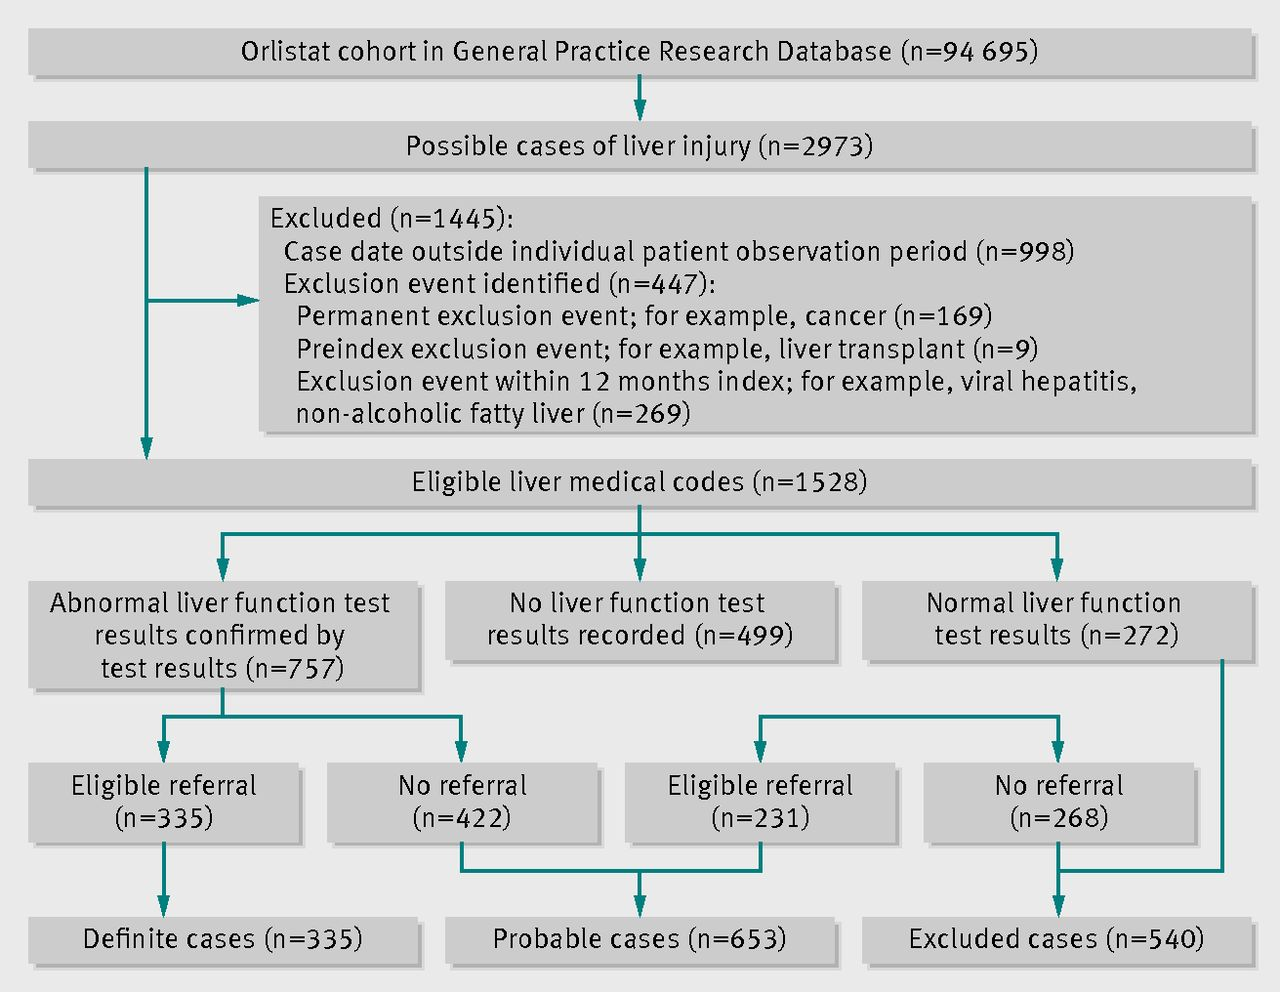 Orlistat And The Risk Of Acute Liver Injury Self Controlled Case